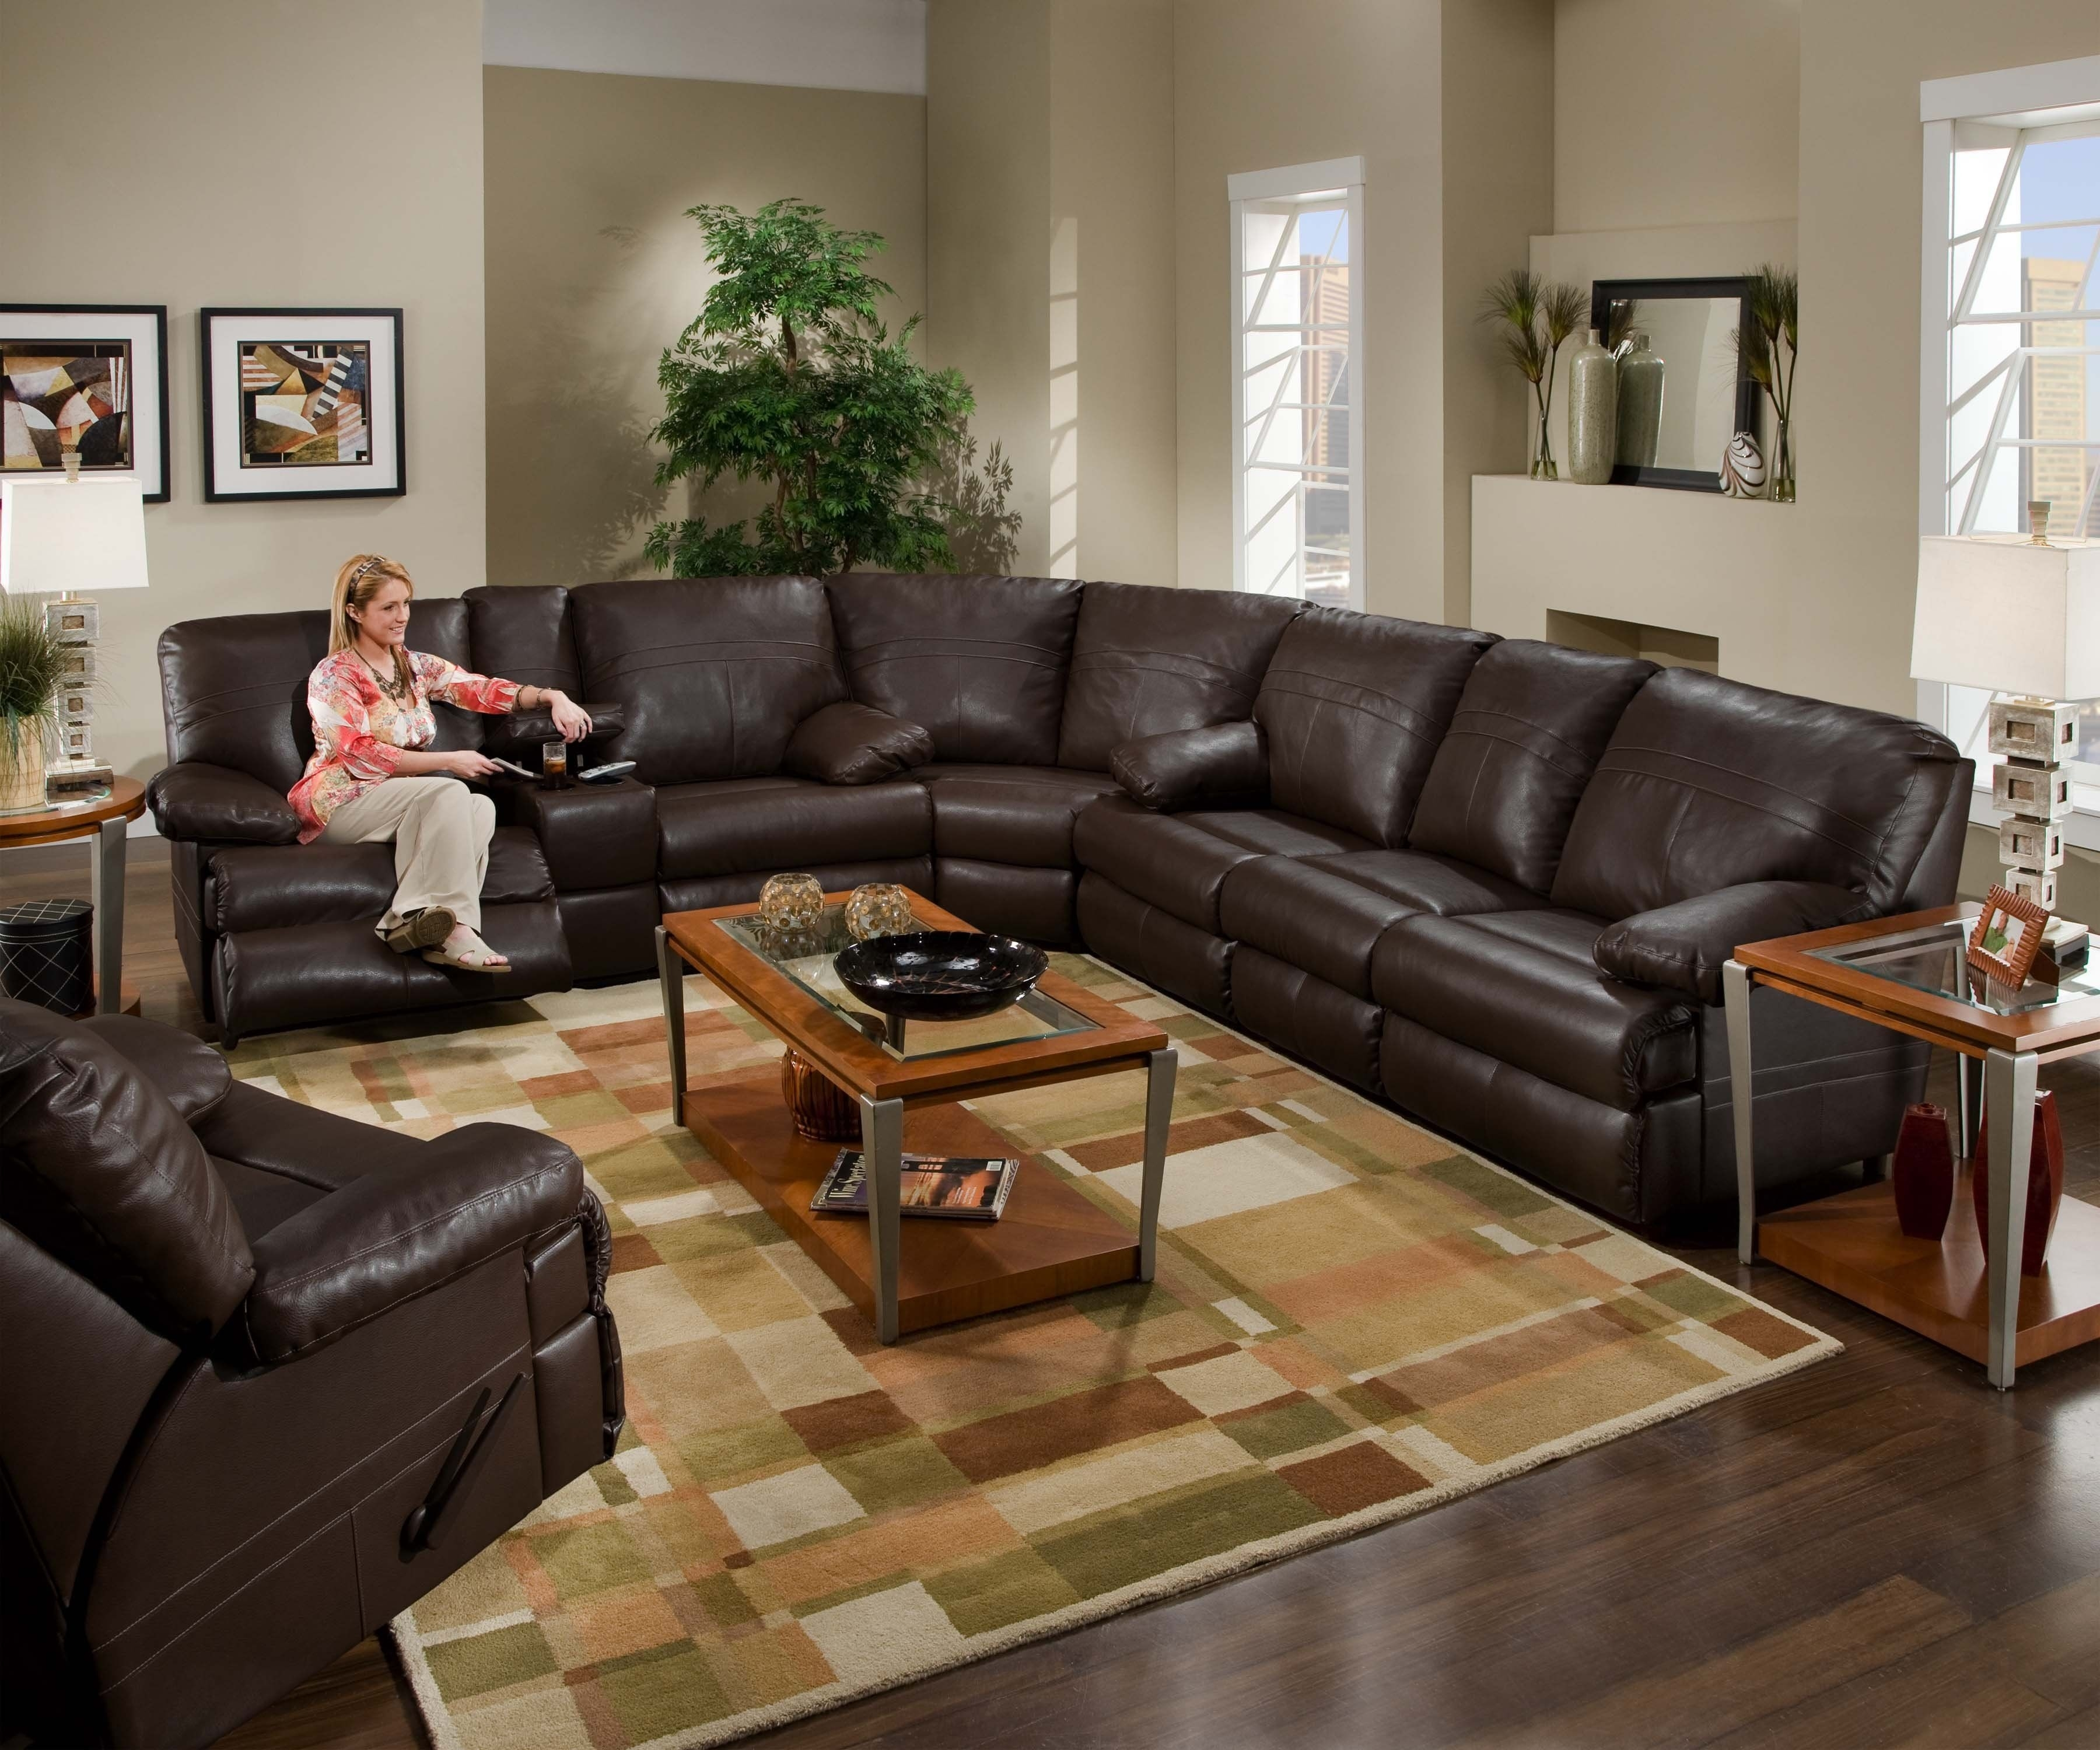 Sectional Leather Couch With Recliners. (View 8 of 10)